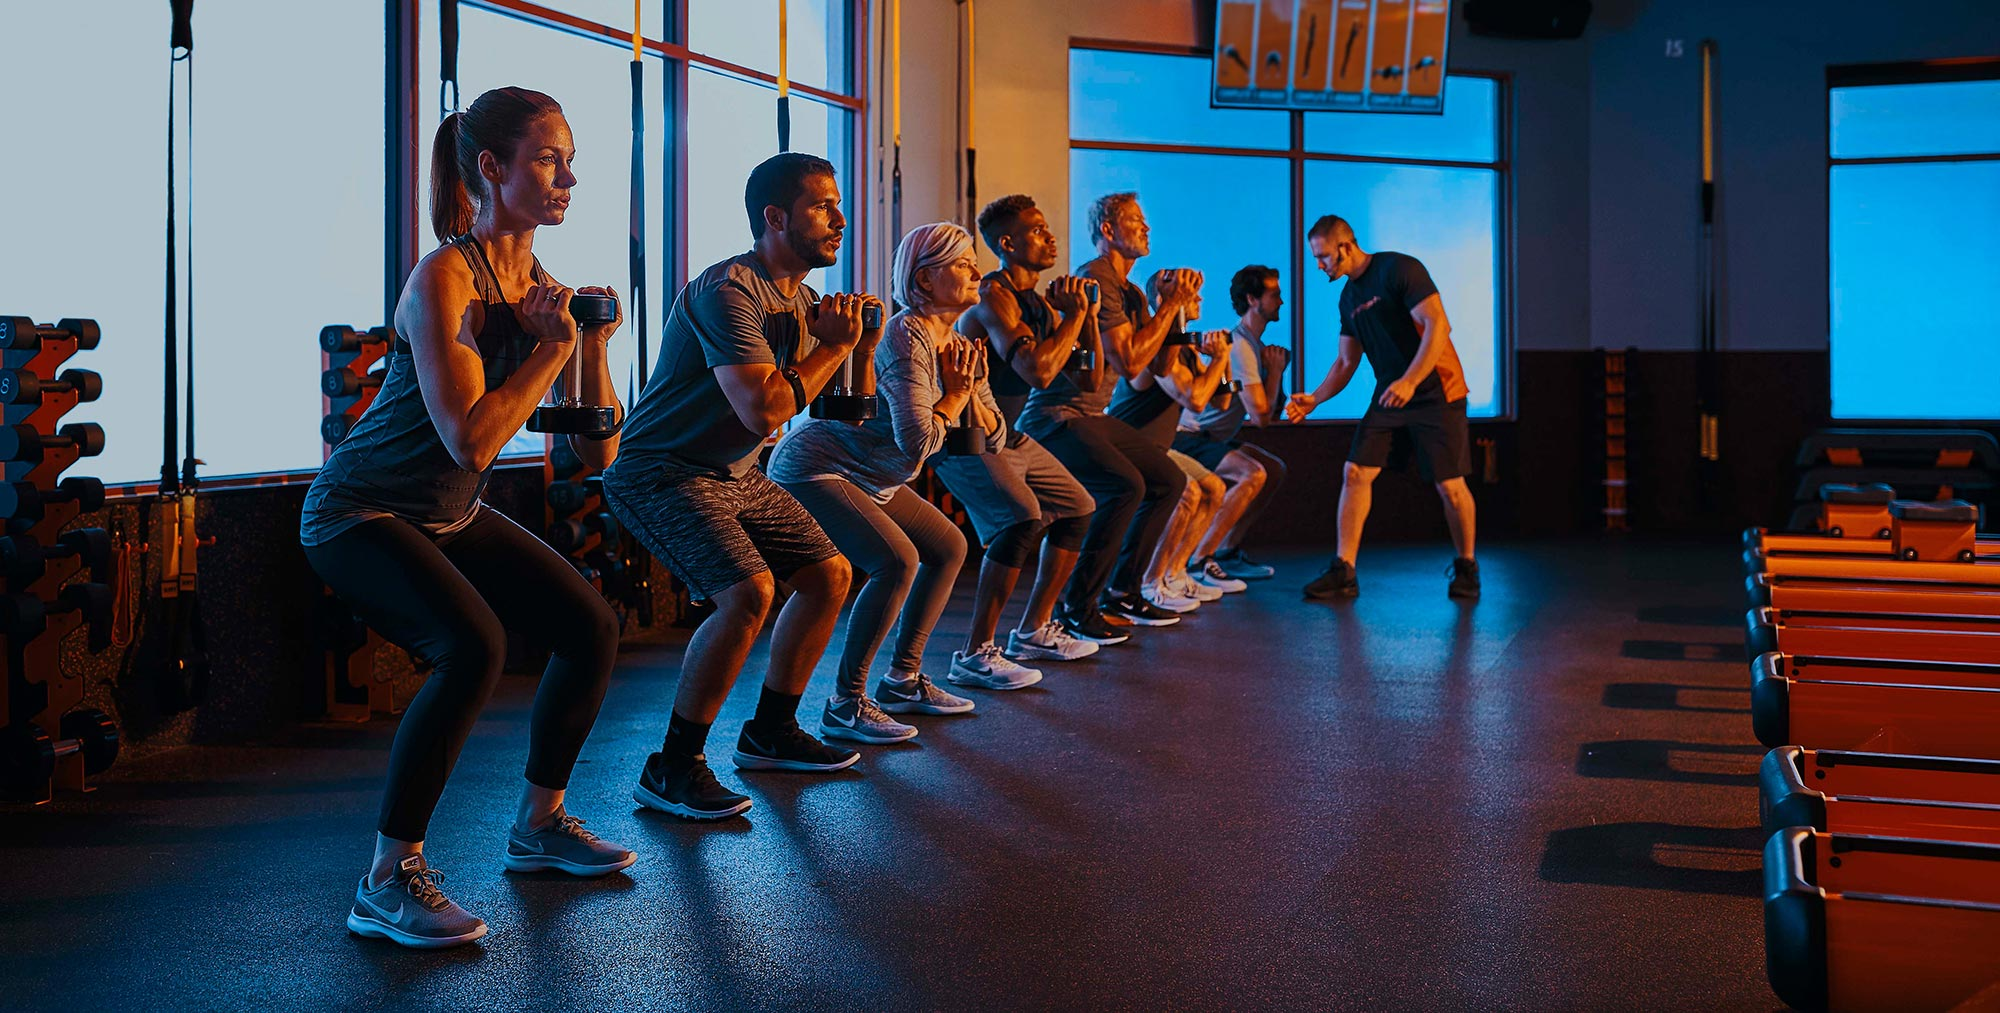 Los angeles teen exercise group